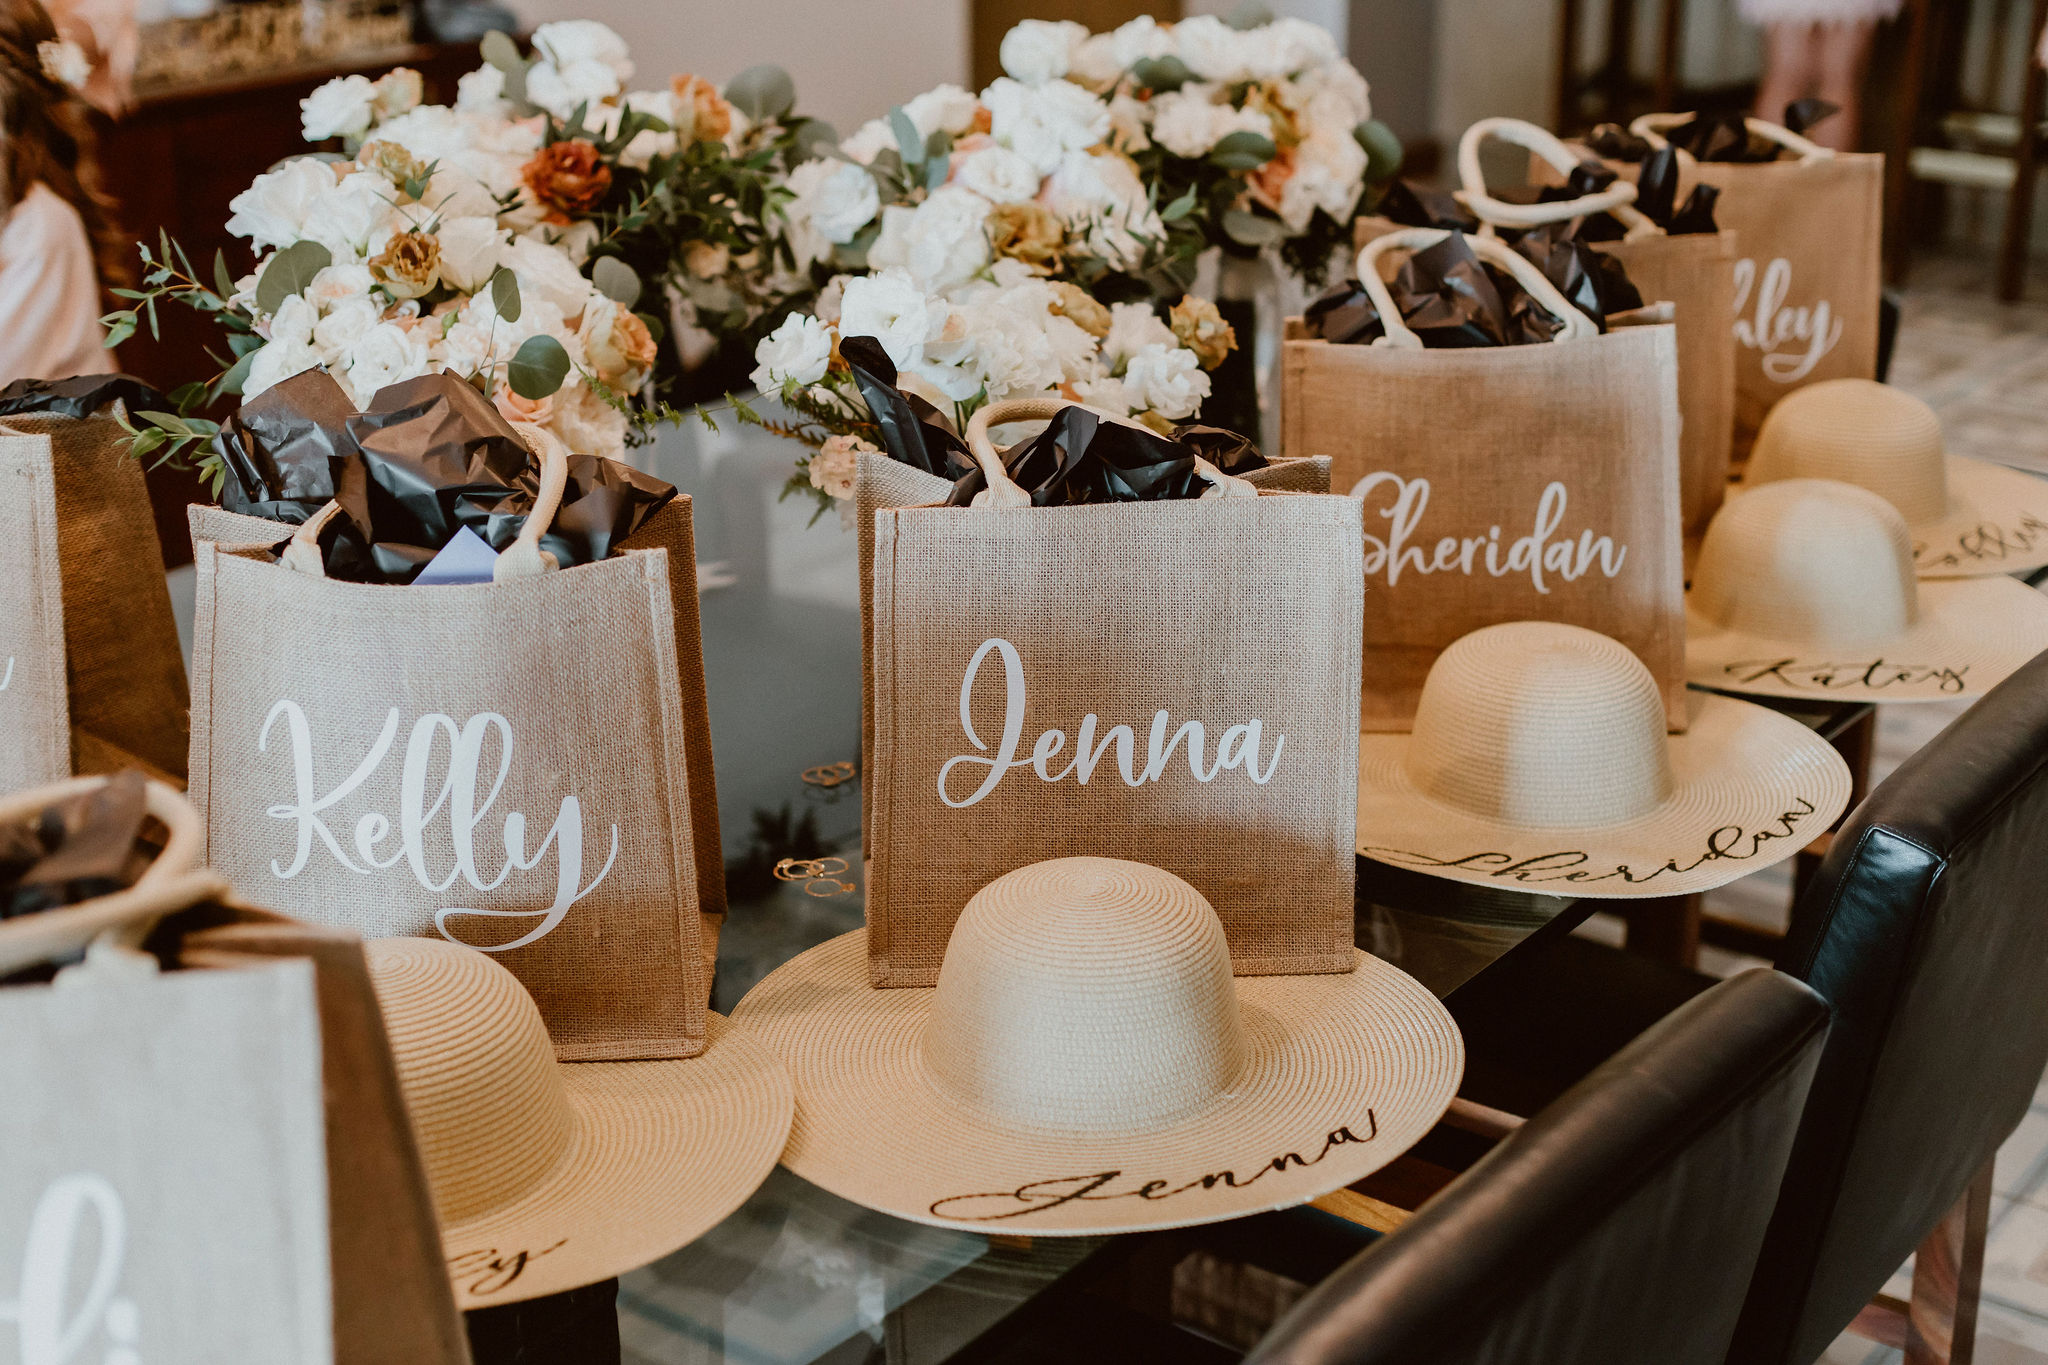 personalized gift bags for the bridal party at a Cabo destination wedding